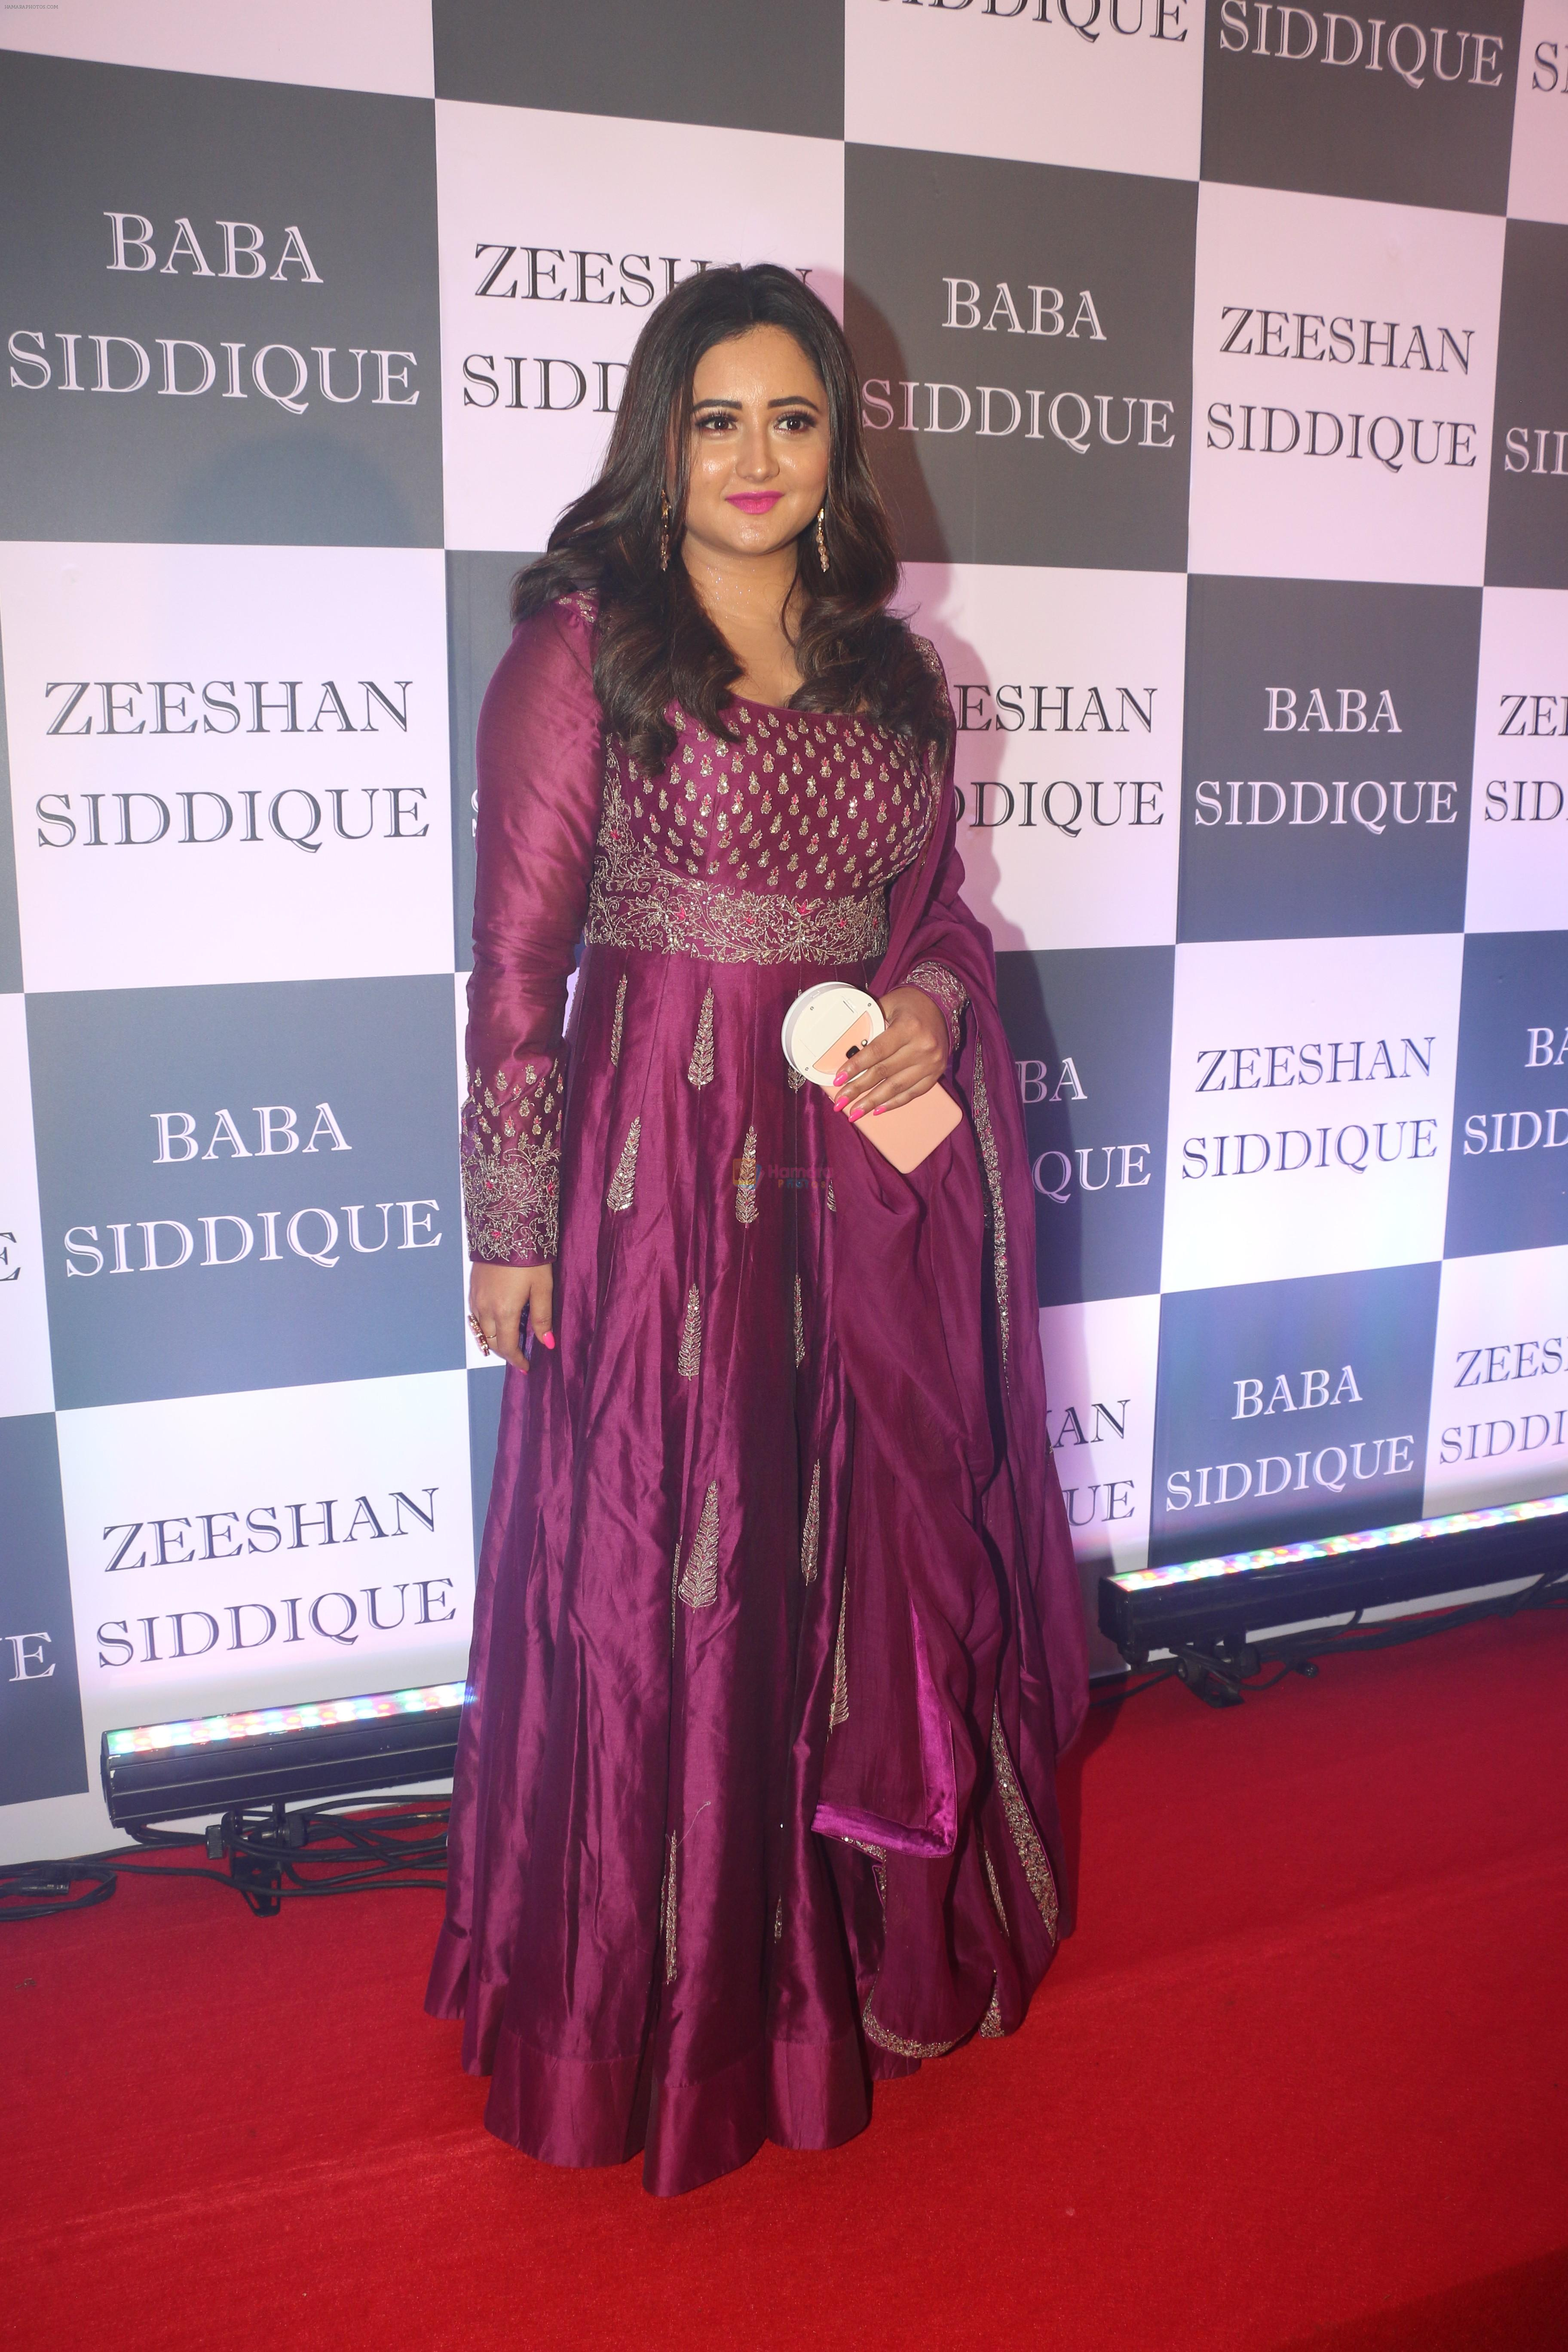 Rashmi Desai at Baba Siddiqui iftaar party in Taj Lands End bandra on 2nd June 2019